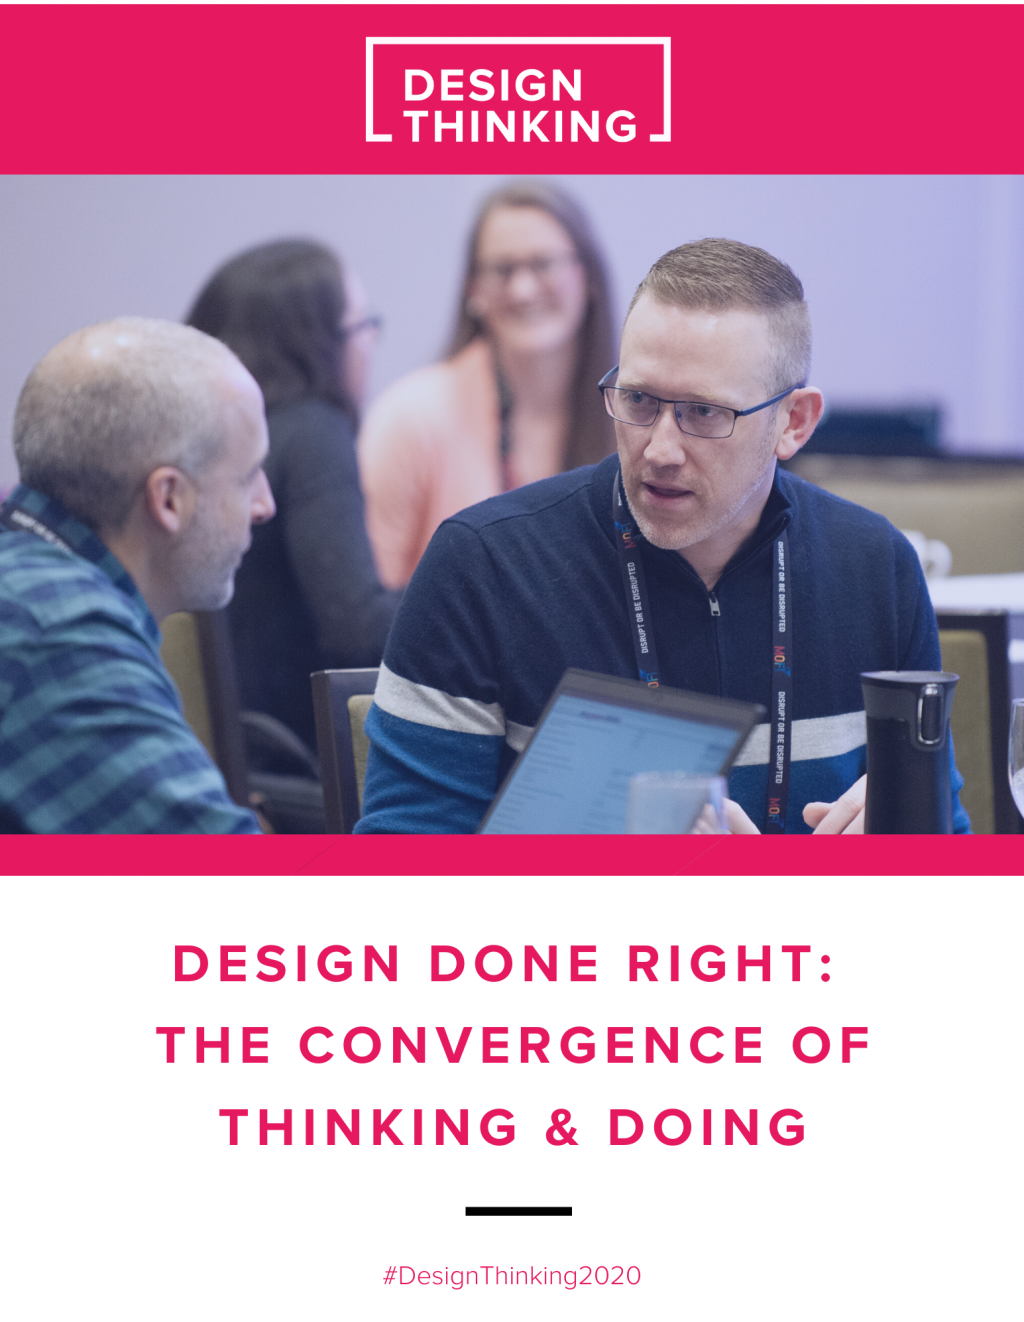 Design Done Right: The Convergence of Thinking & Doing